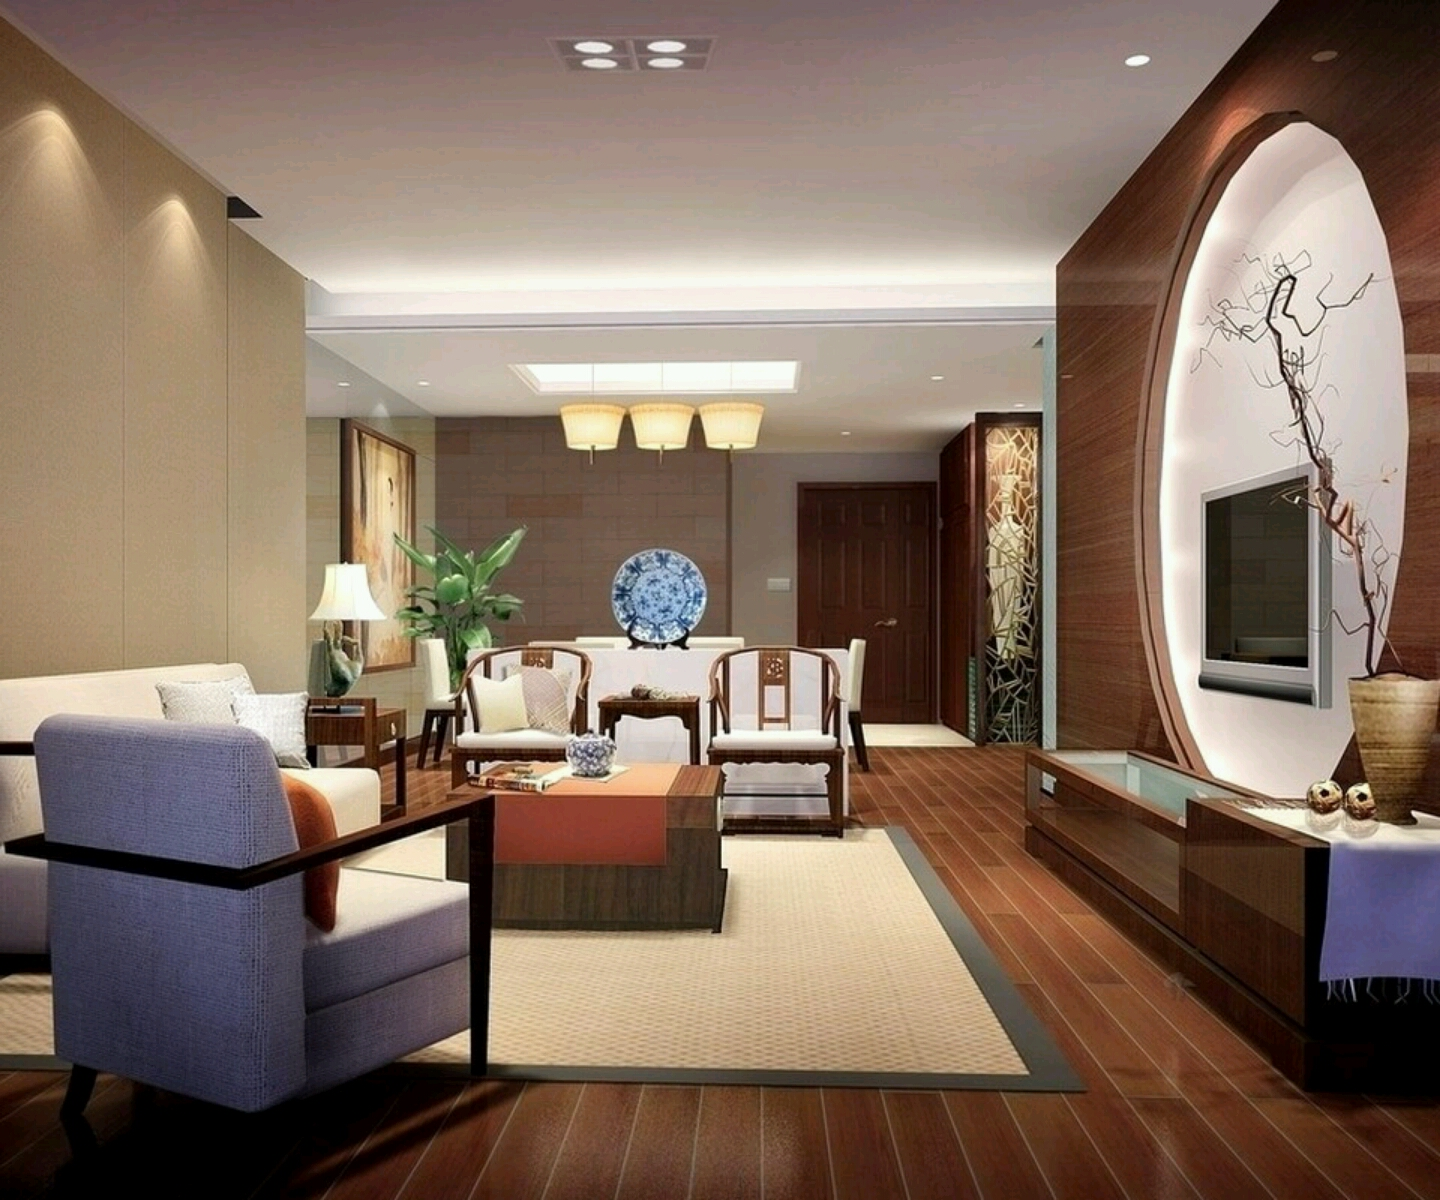 Luxury homes interior decoration living room designs ideas for Home design ideas living room